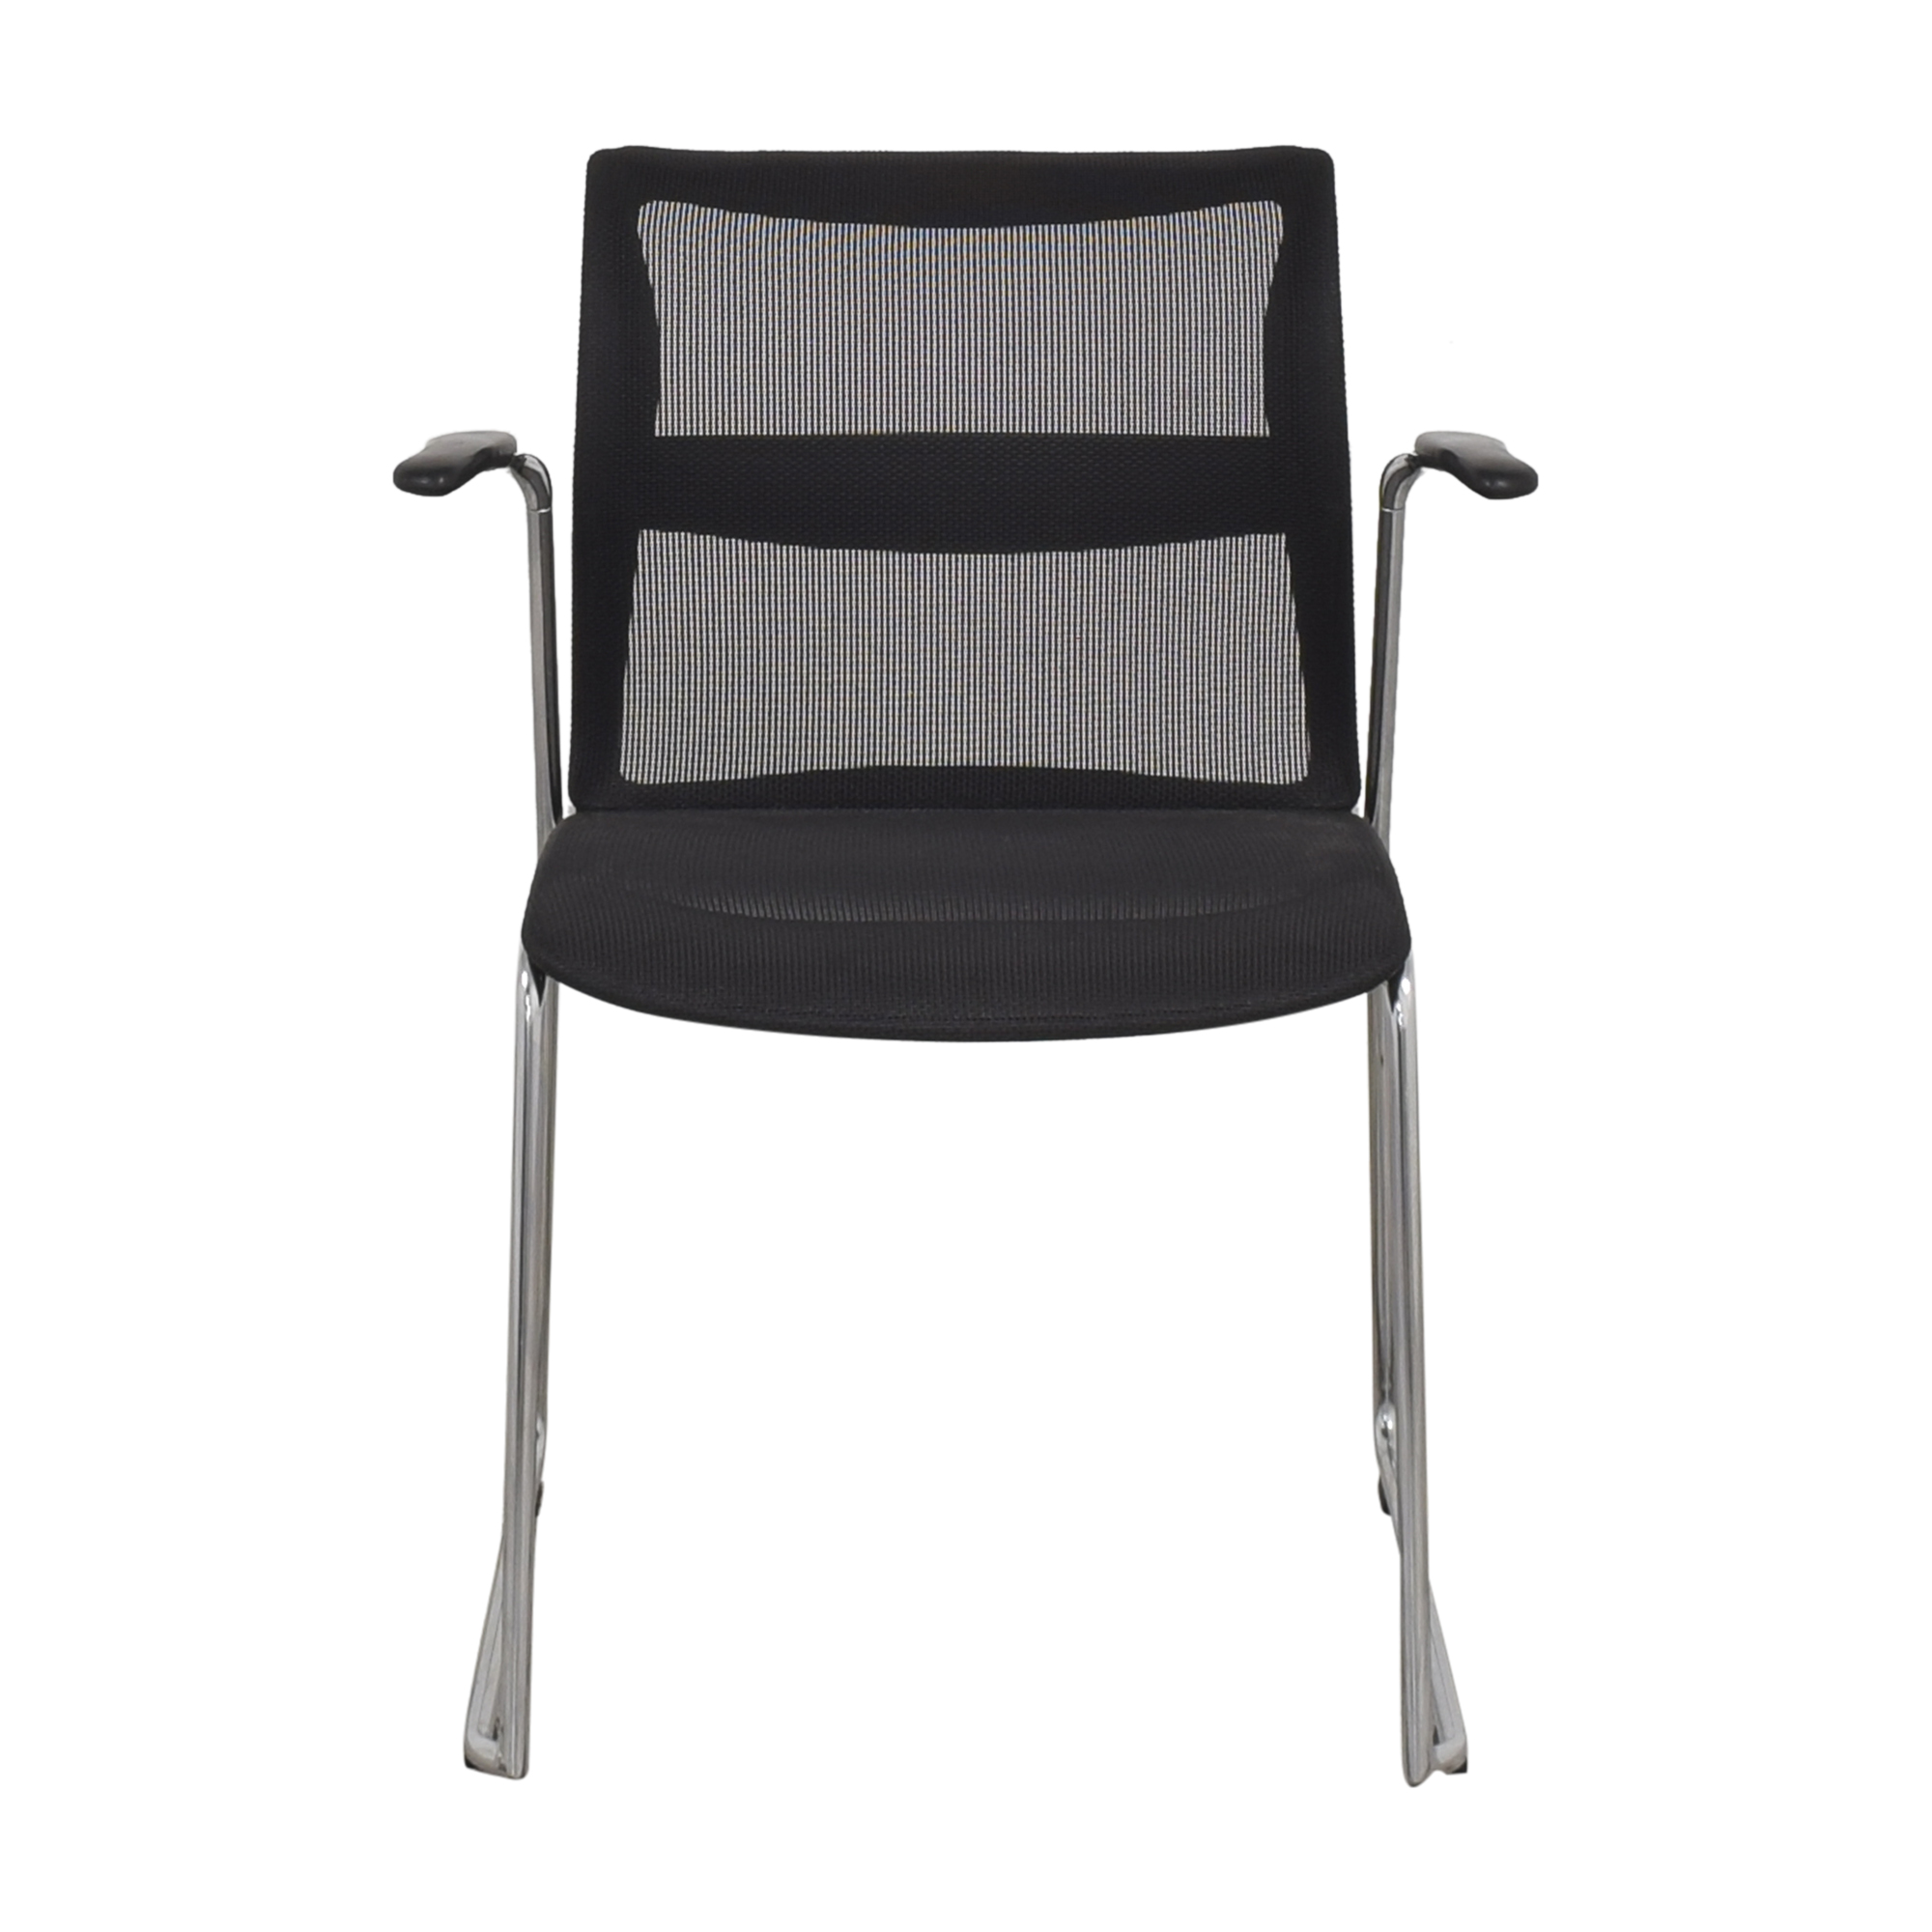 Stylex Stylex Zephyr Stacking Arm Chair nyc